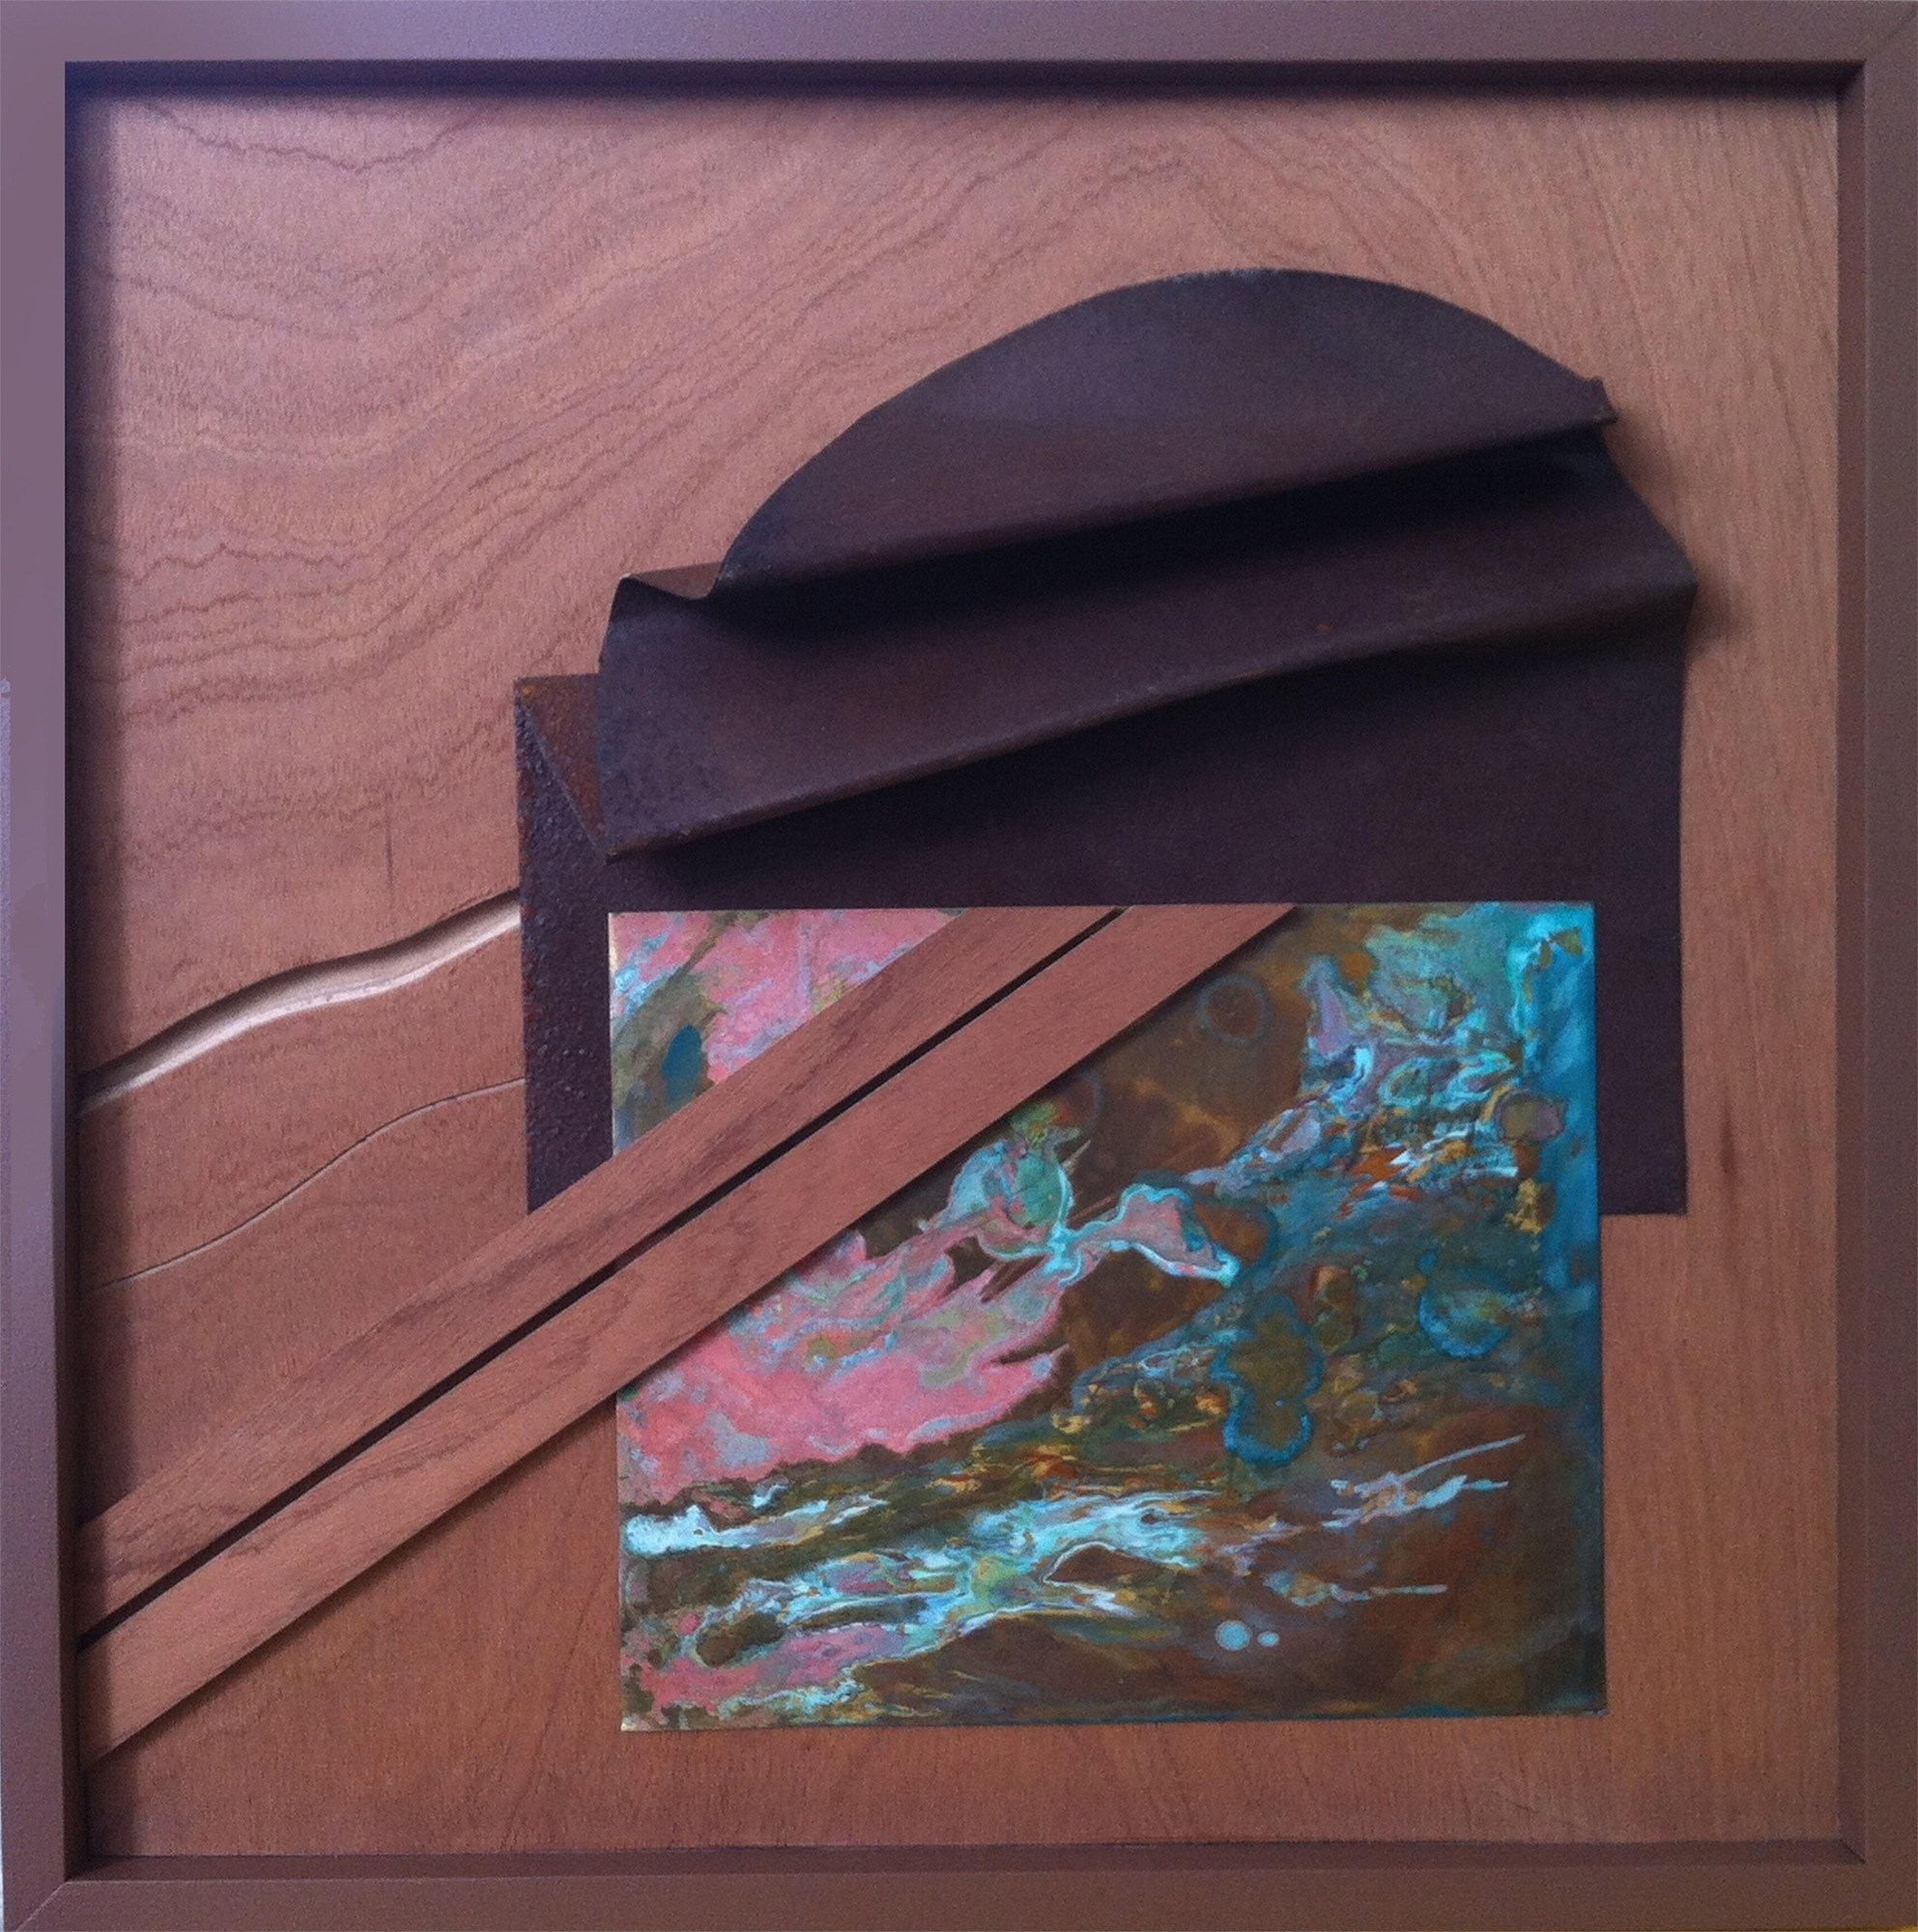 Paisagem com Dobra 2, original Abstract Wood Sculpture by Carlos Marques